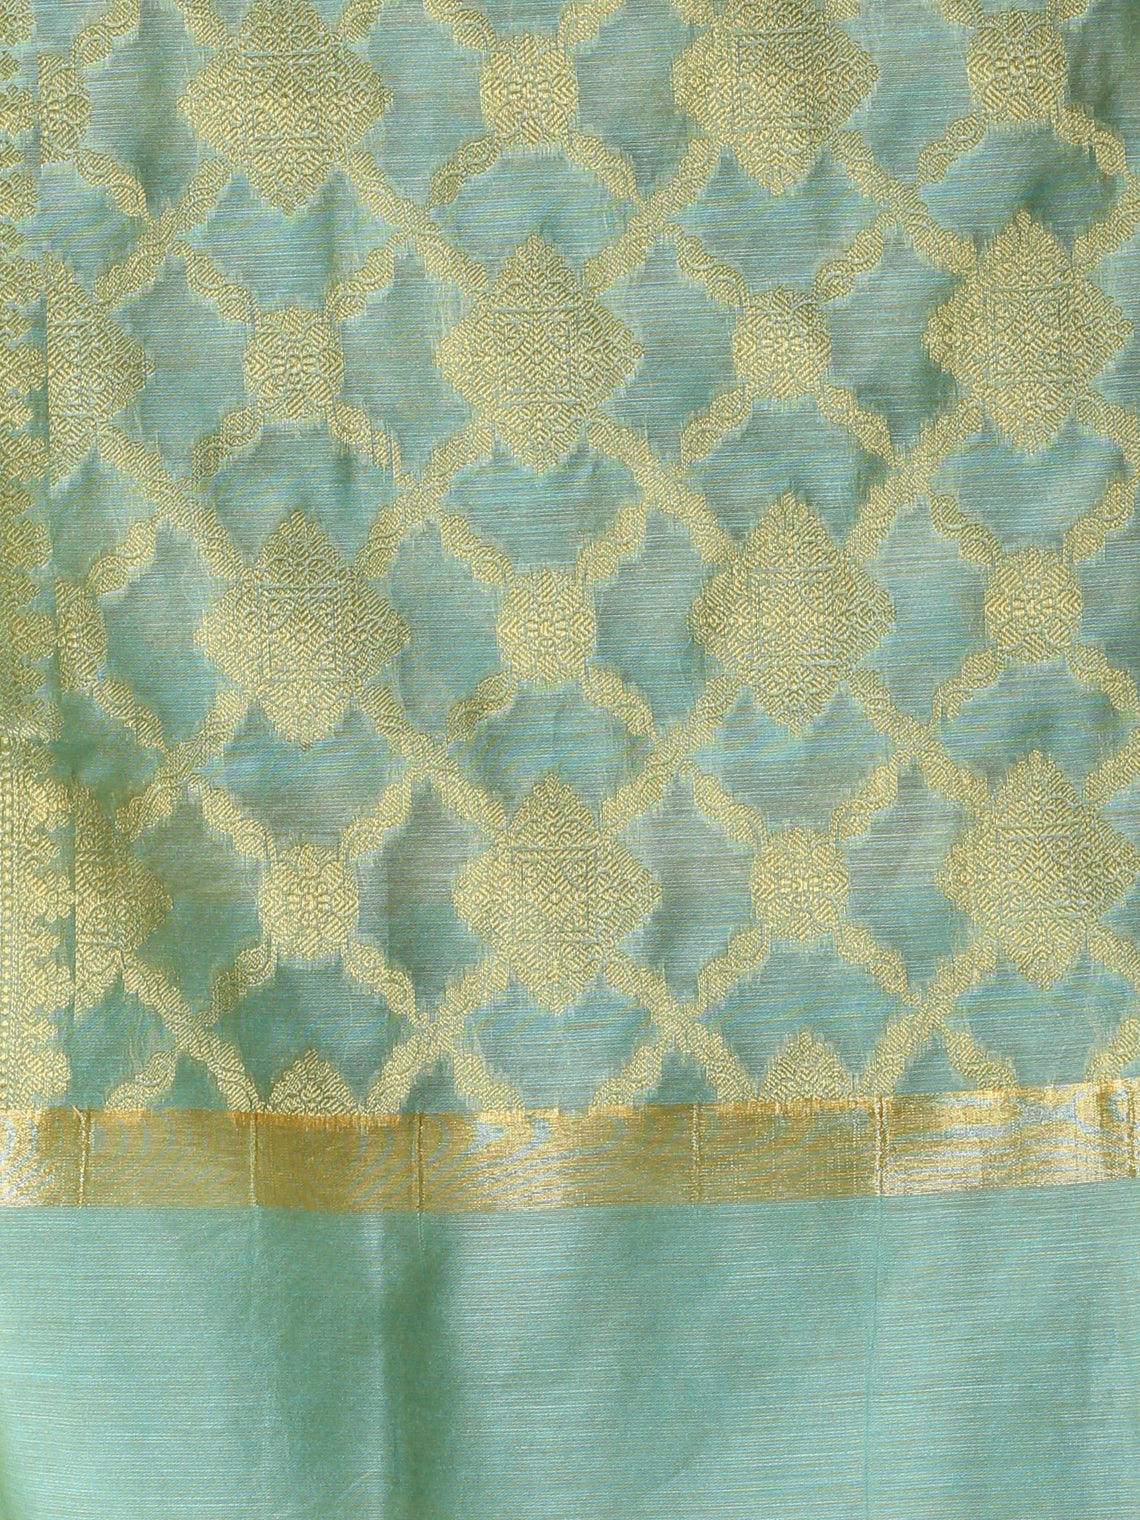 Banarasi Chanderi Dupatta With Zari Work - Sea Green & Gold - D04170856